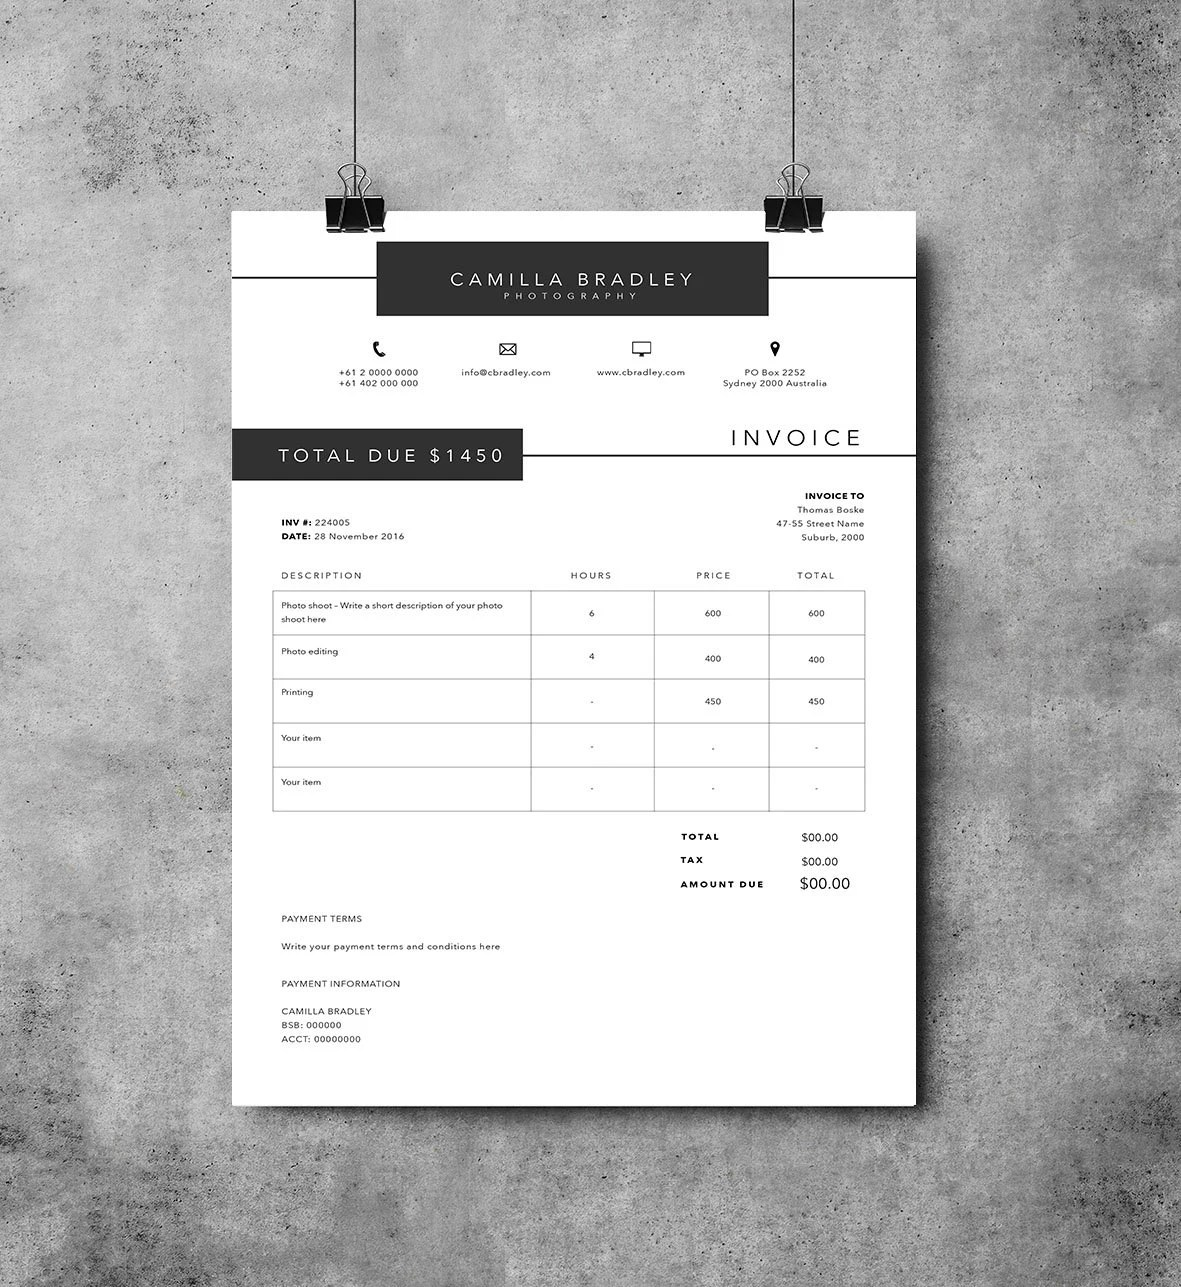 images for photography invoice